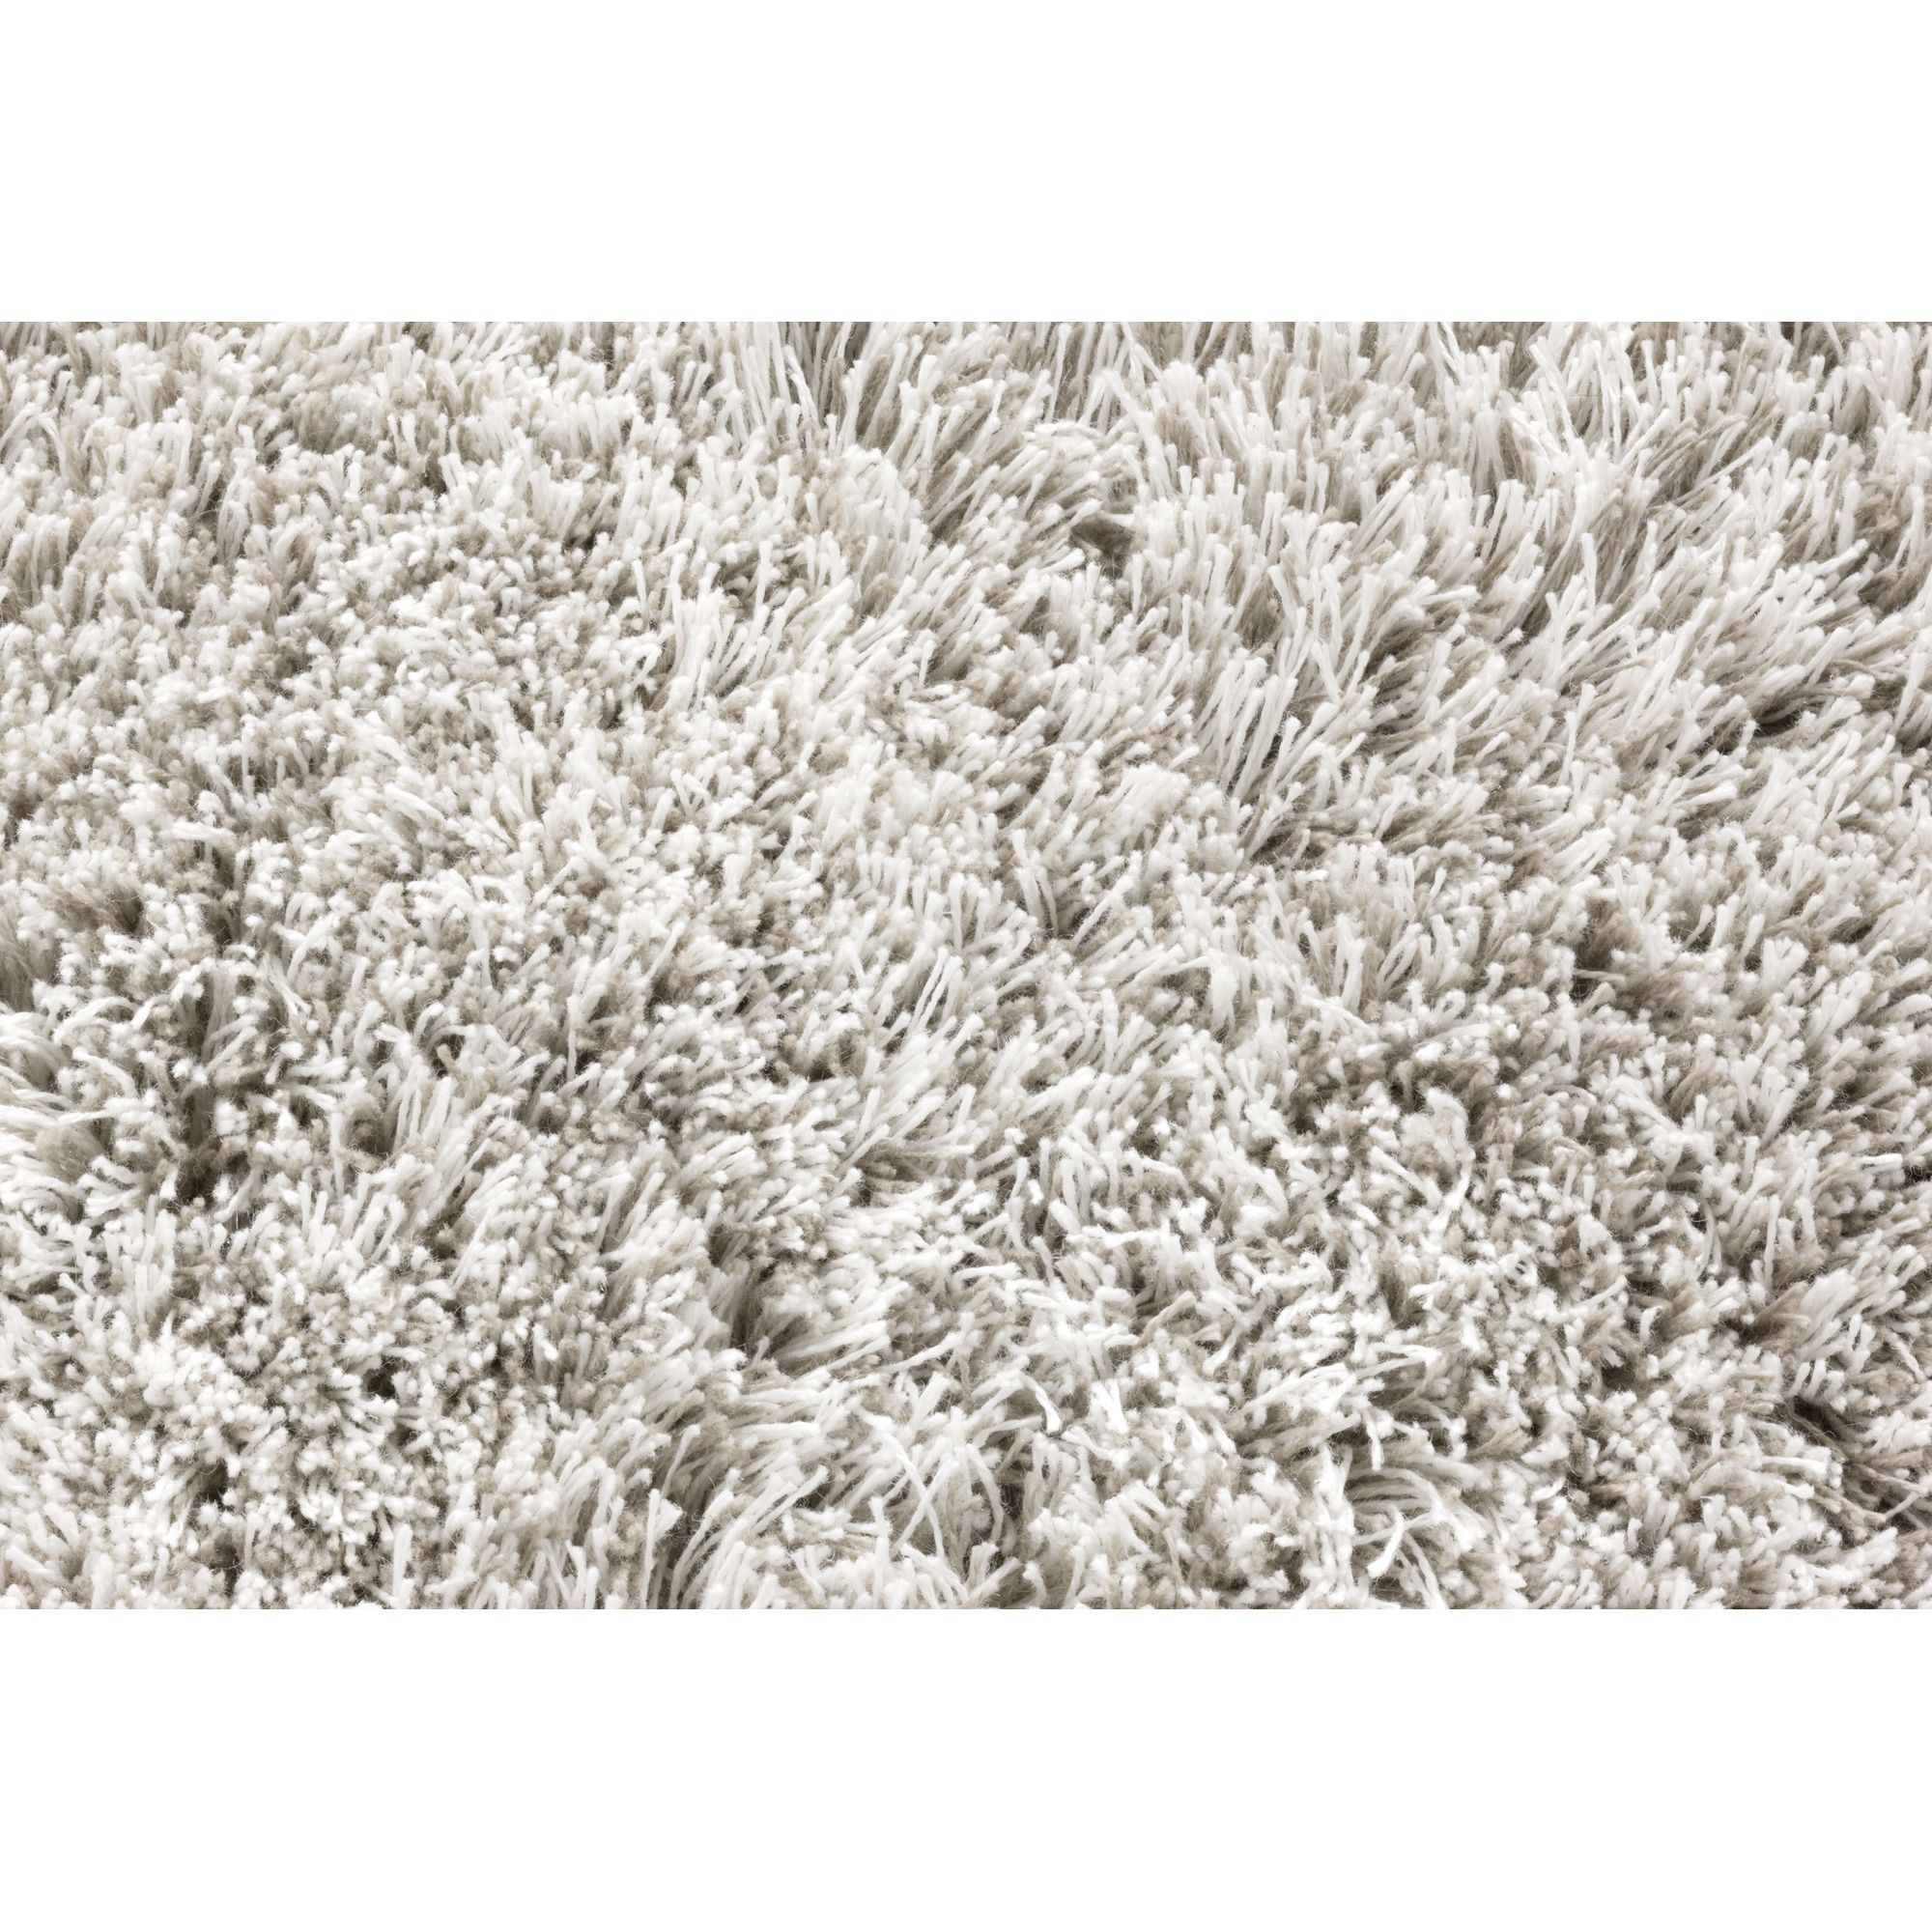 Linie Design Timeless White Shag Rug - 240cm x 170cm at Tesco Direct